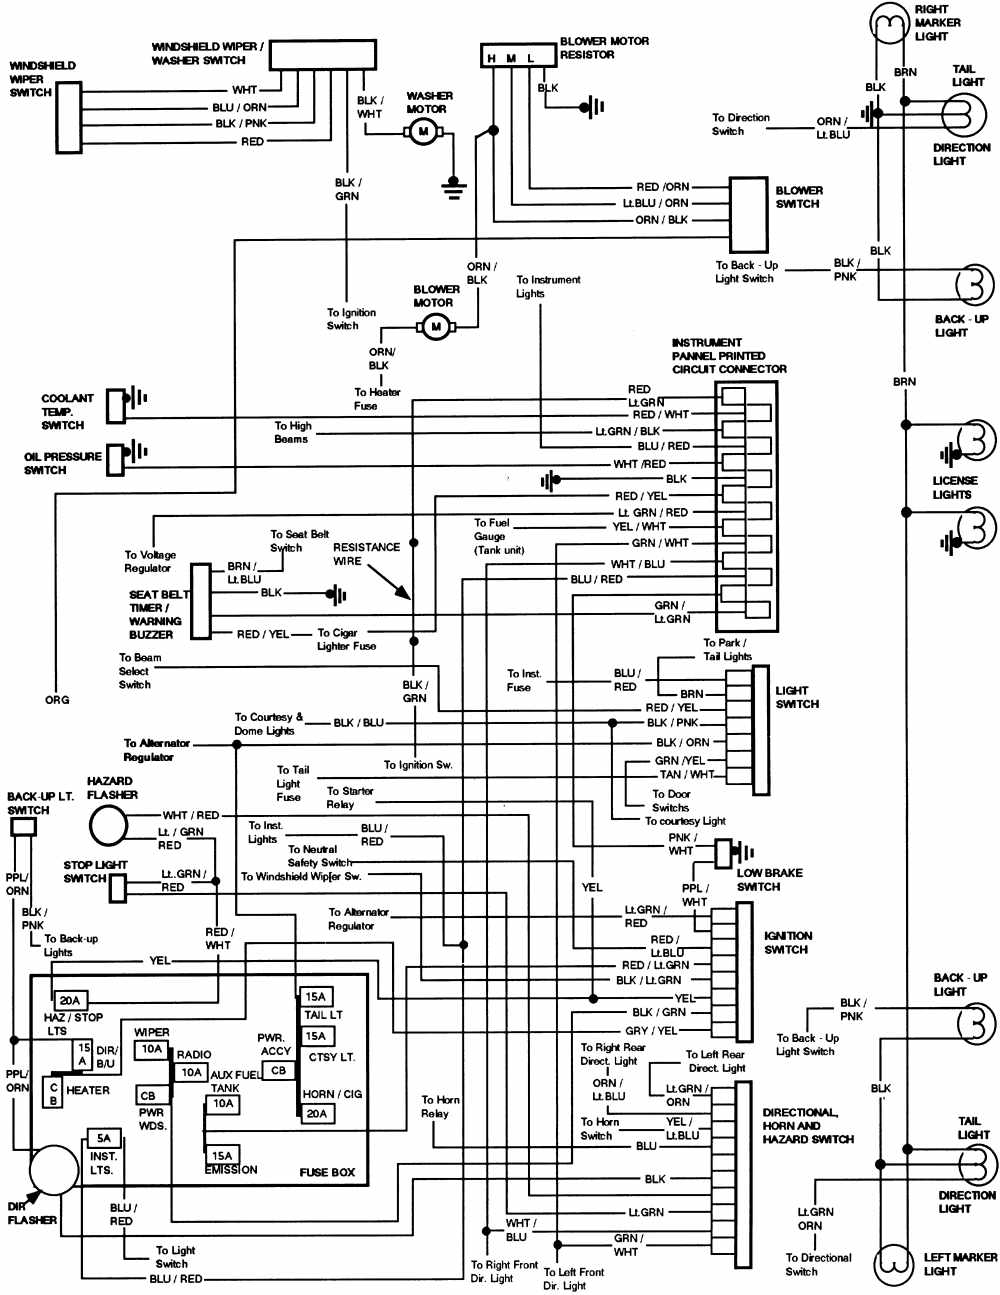 ford solenoid wiring diagram for emissions